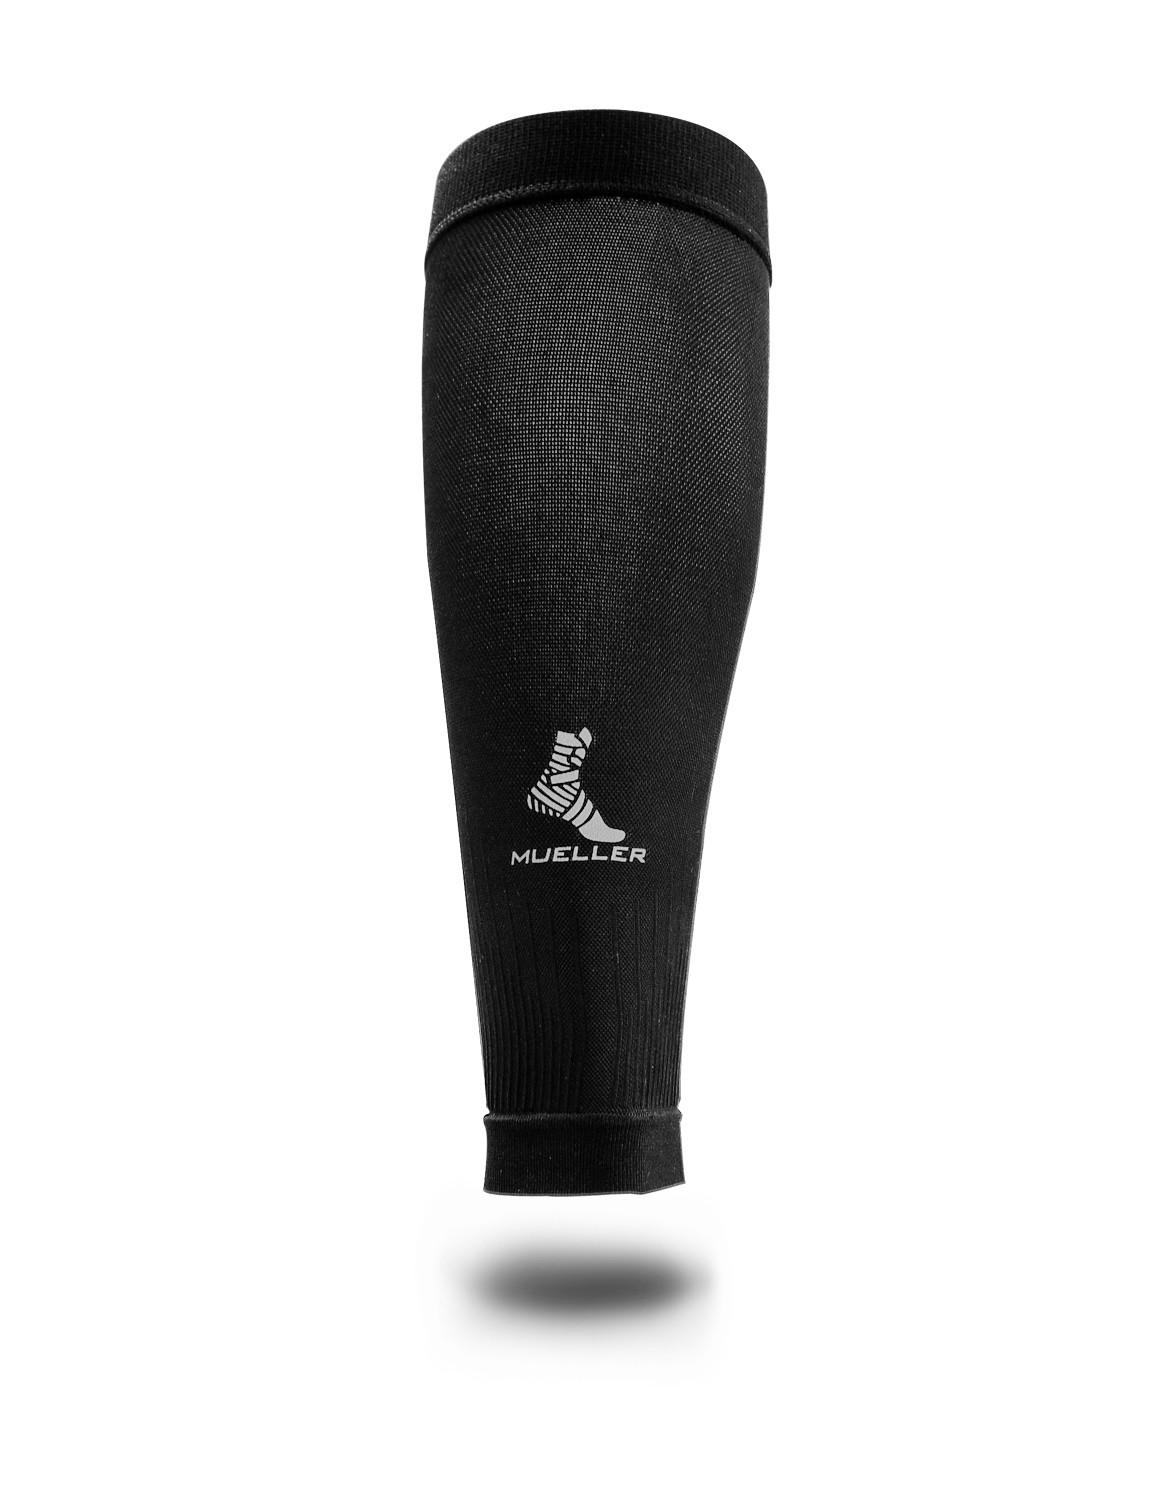 Mueller® Graduated Compression Calf Sleeves